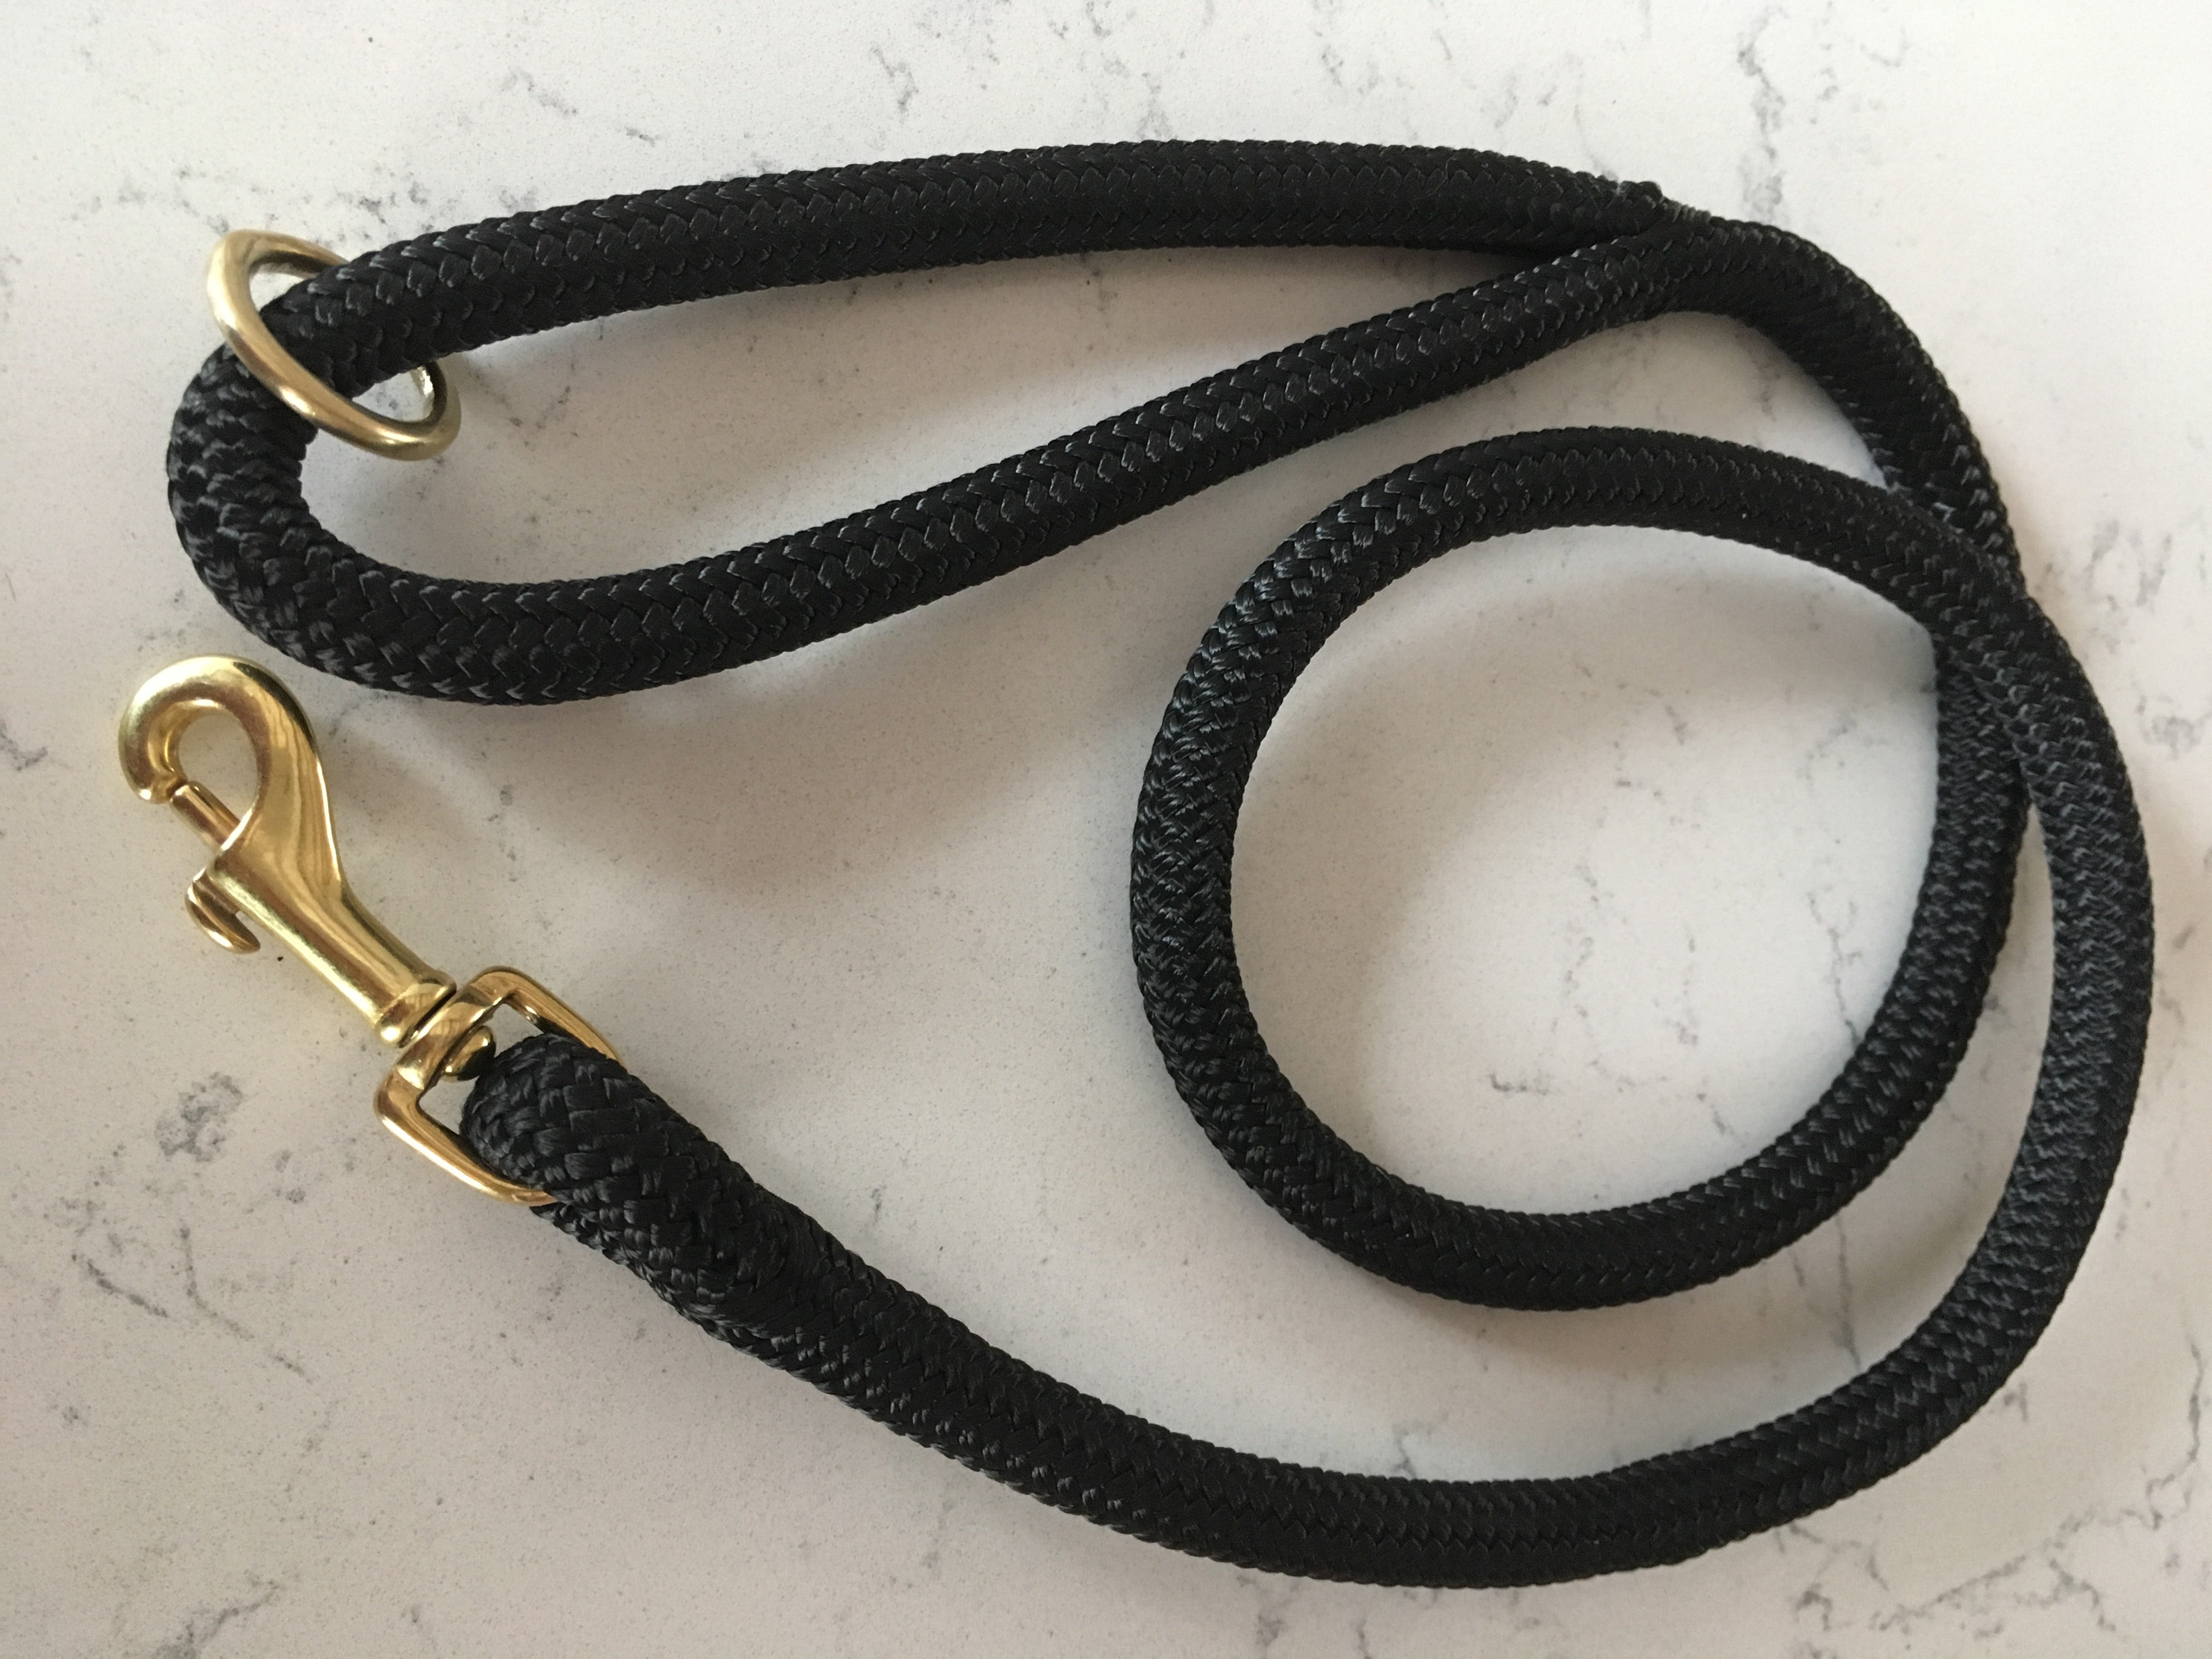 Slow fashion luxury black rope lead for spoint doggos with gold detail